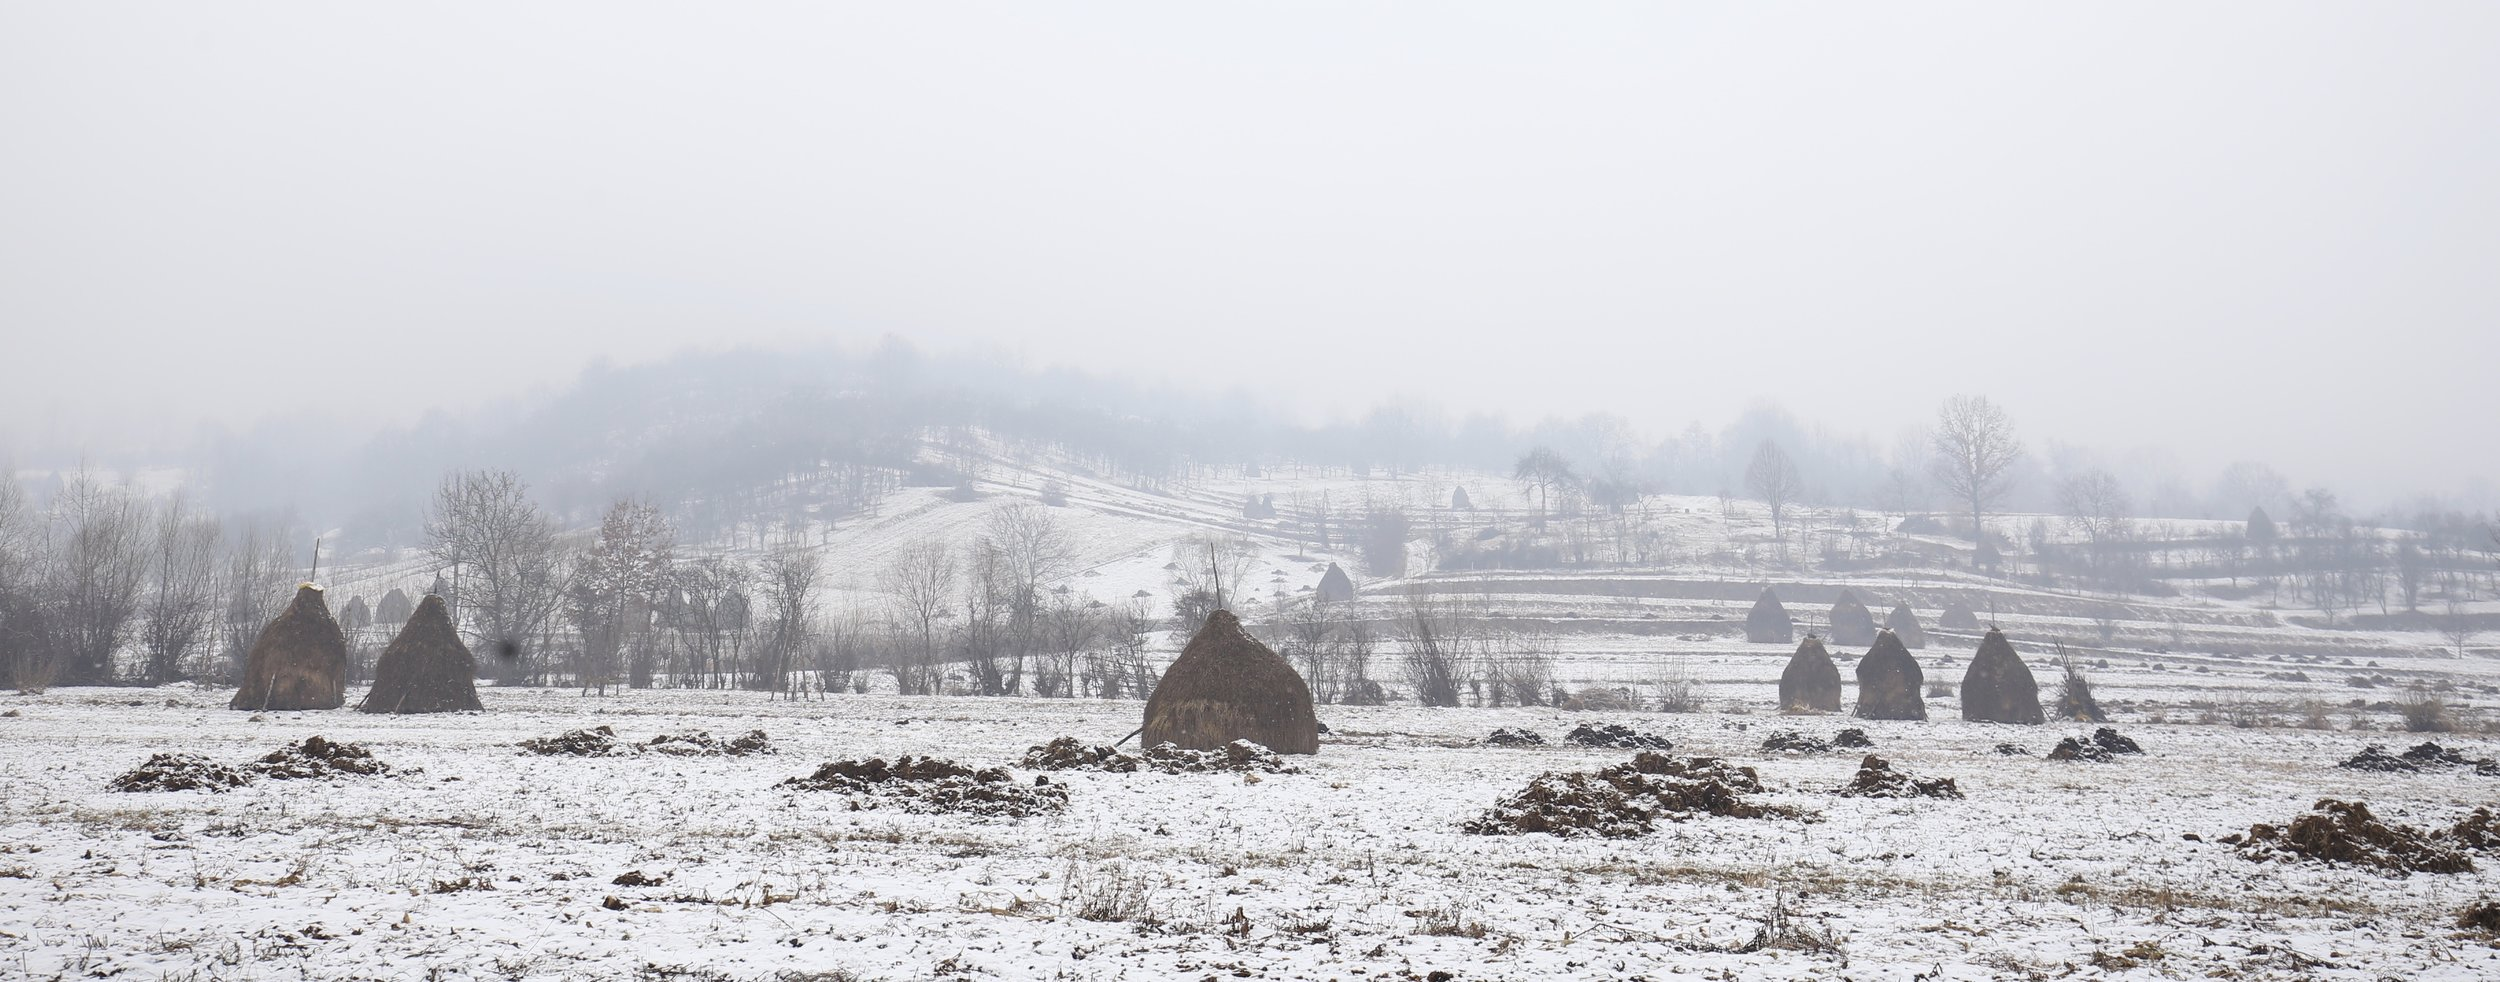 Haystacks in a snow covered field in Maramures.